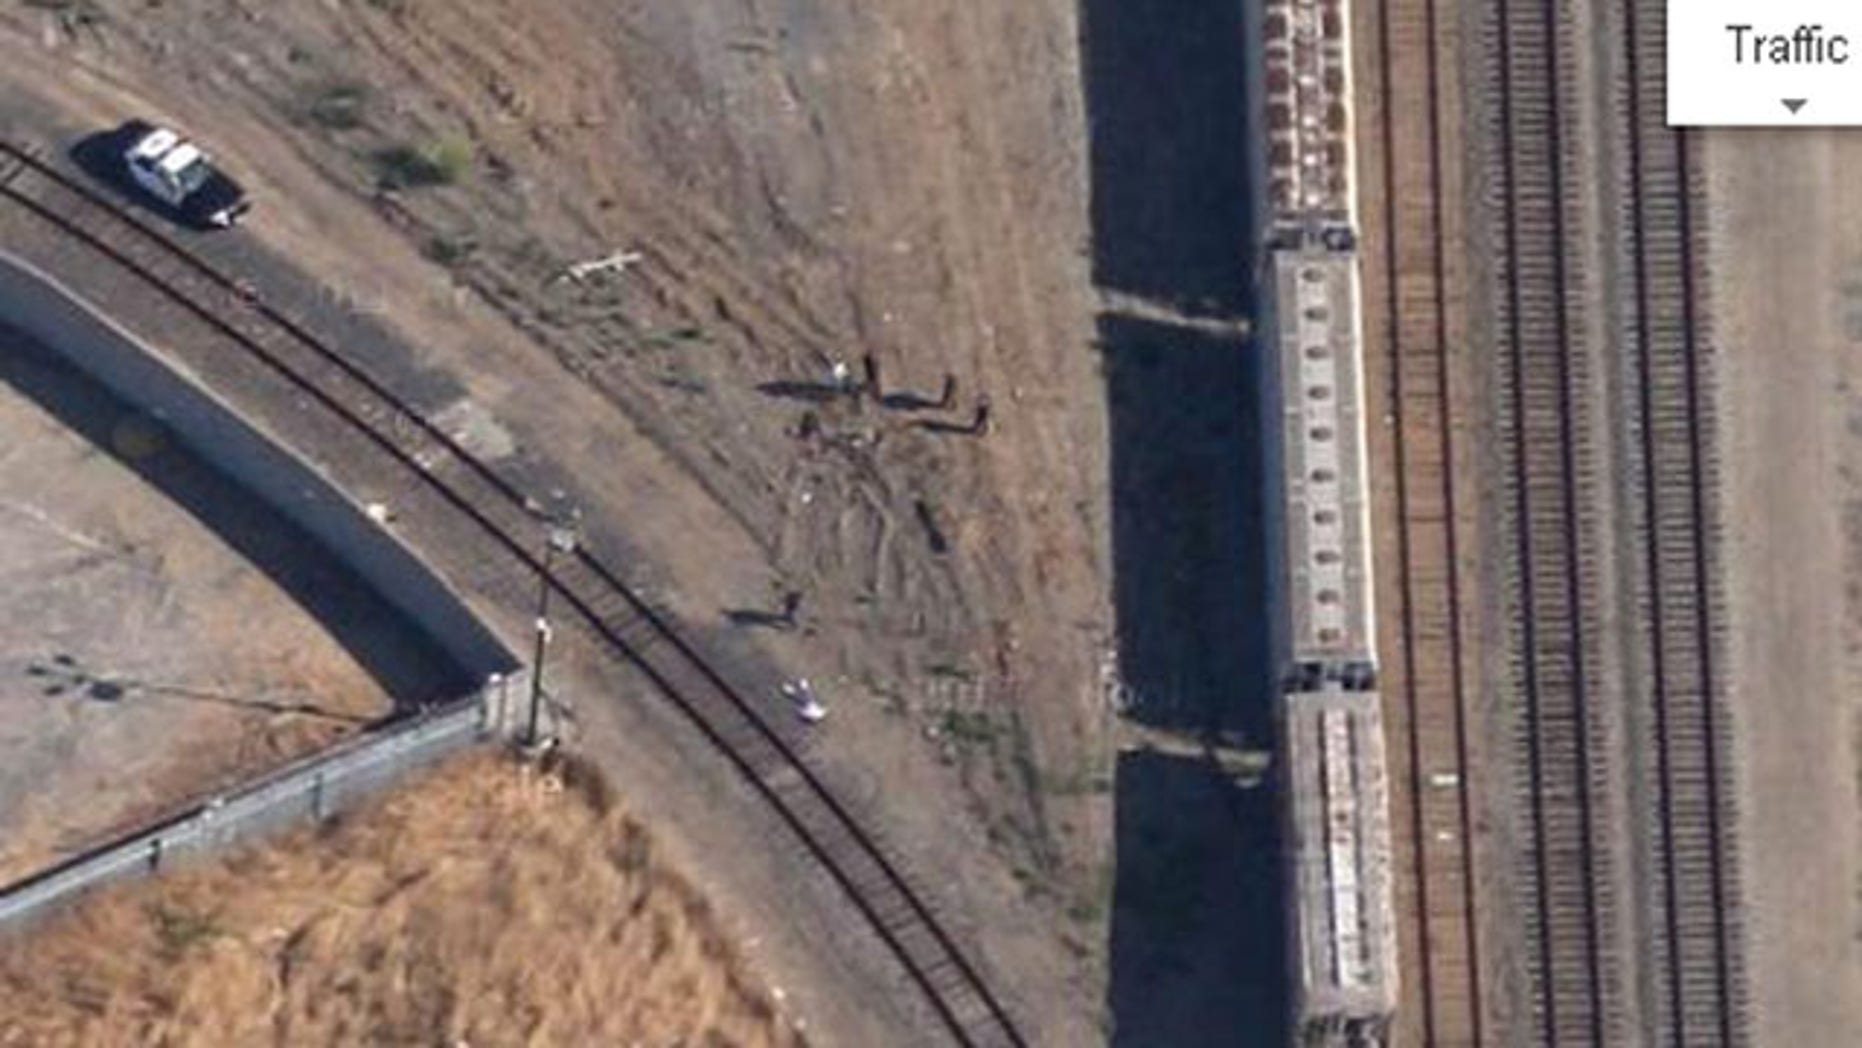 This photo from Google Maps shows investigators surrounding the body of 14-year-old Kevin Barrera in 2009 (Google Maps)